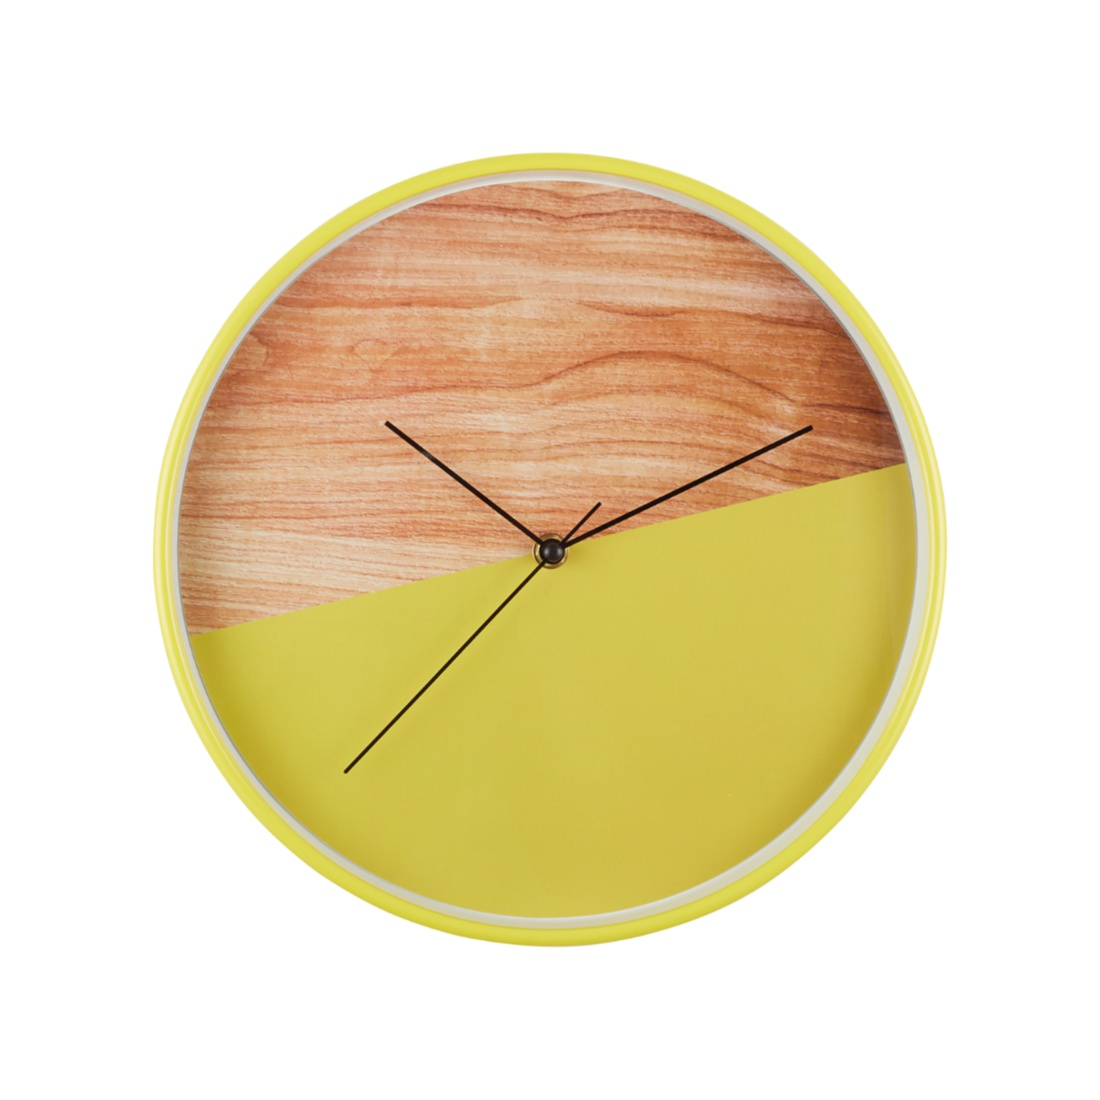 Aeon Half-In-Half Wall Clock Plastic Modern Clocks in Yellow&Wood Colour by Living Essence